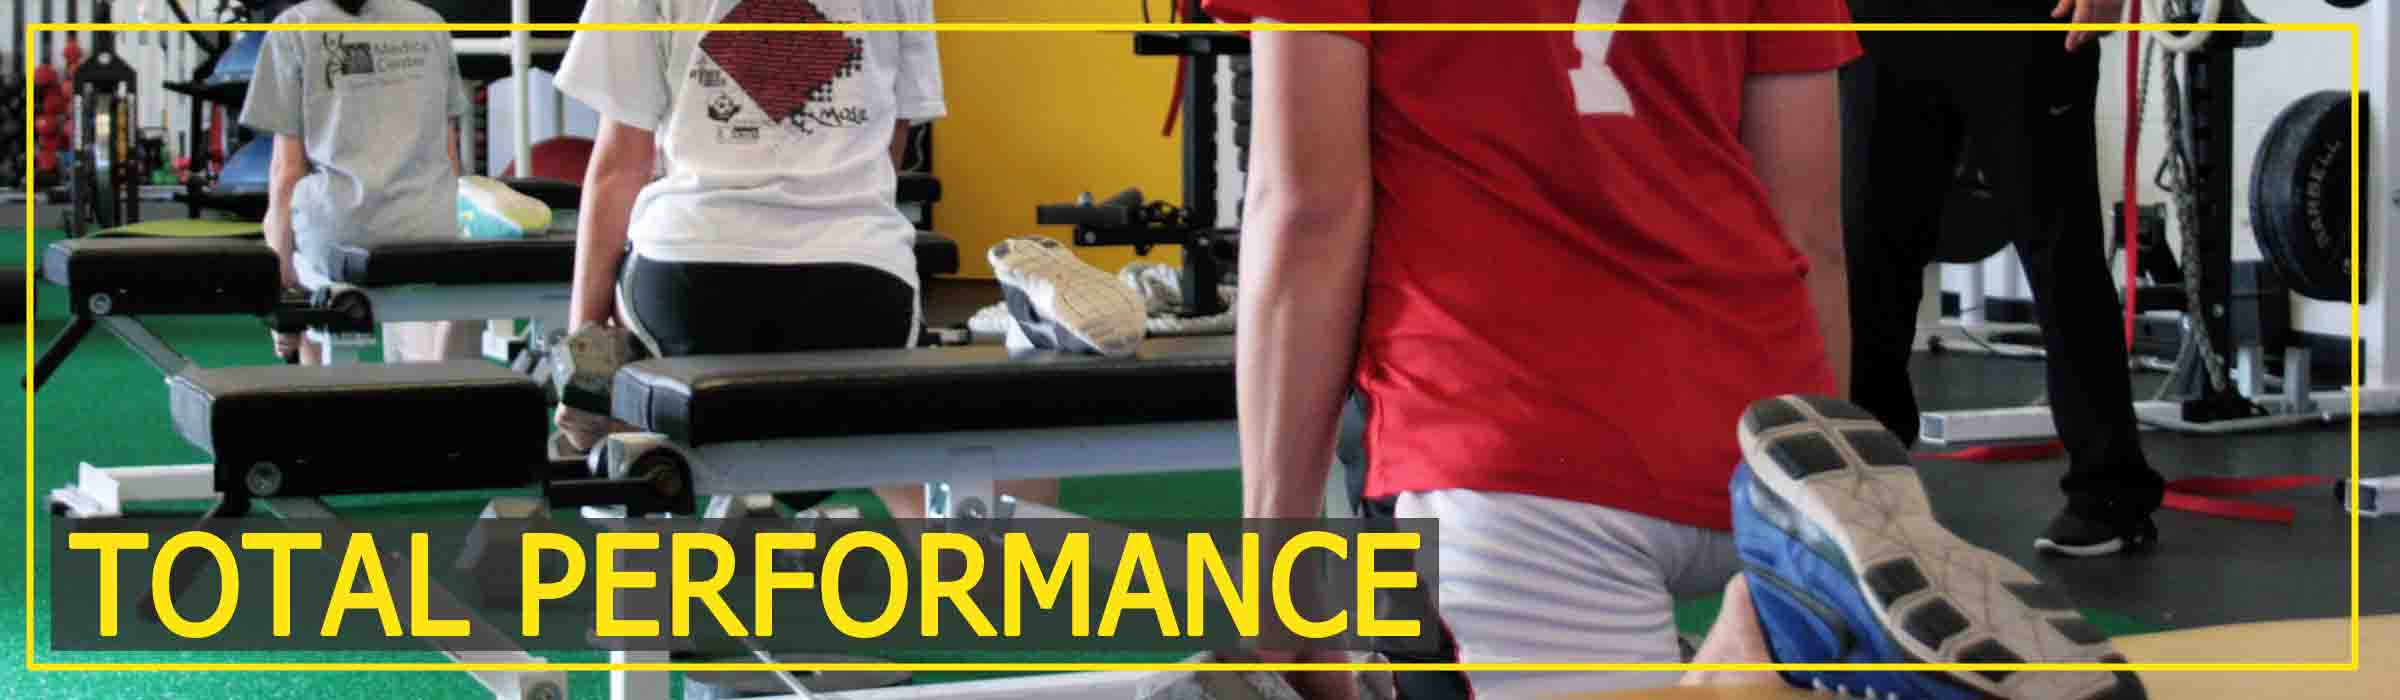 Go Sports Performance Total Performance Program